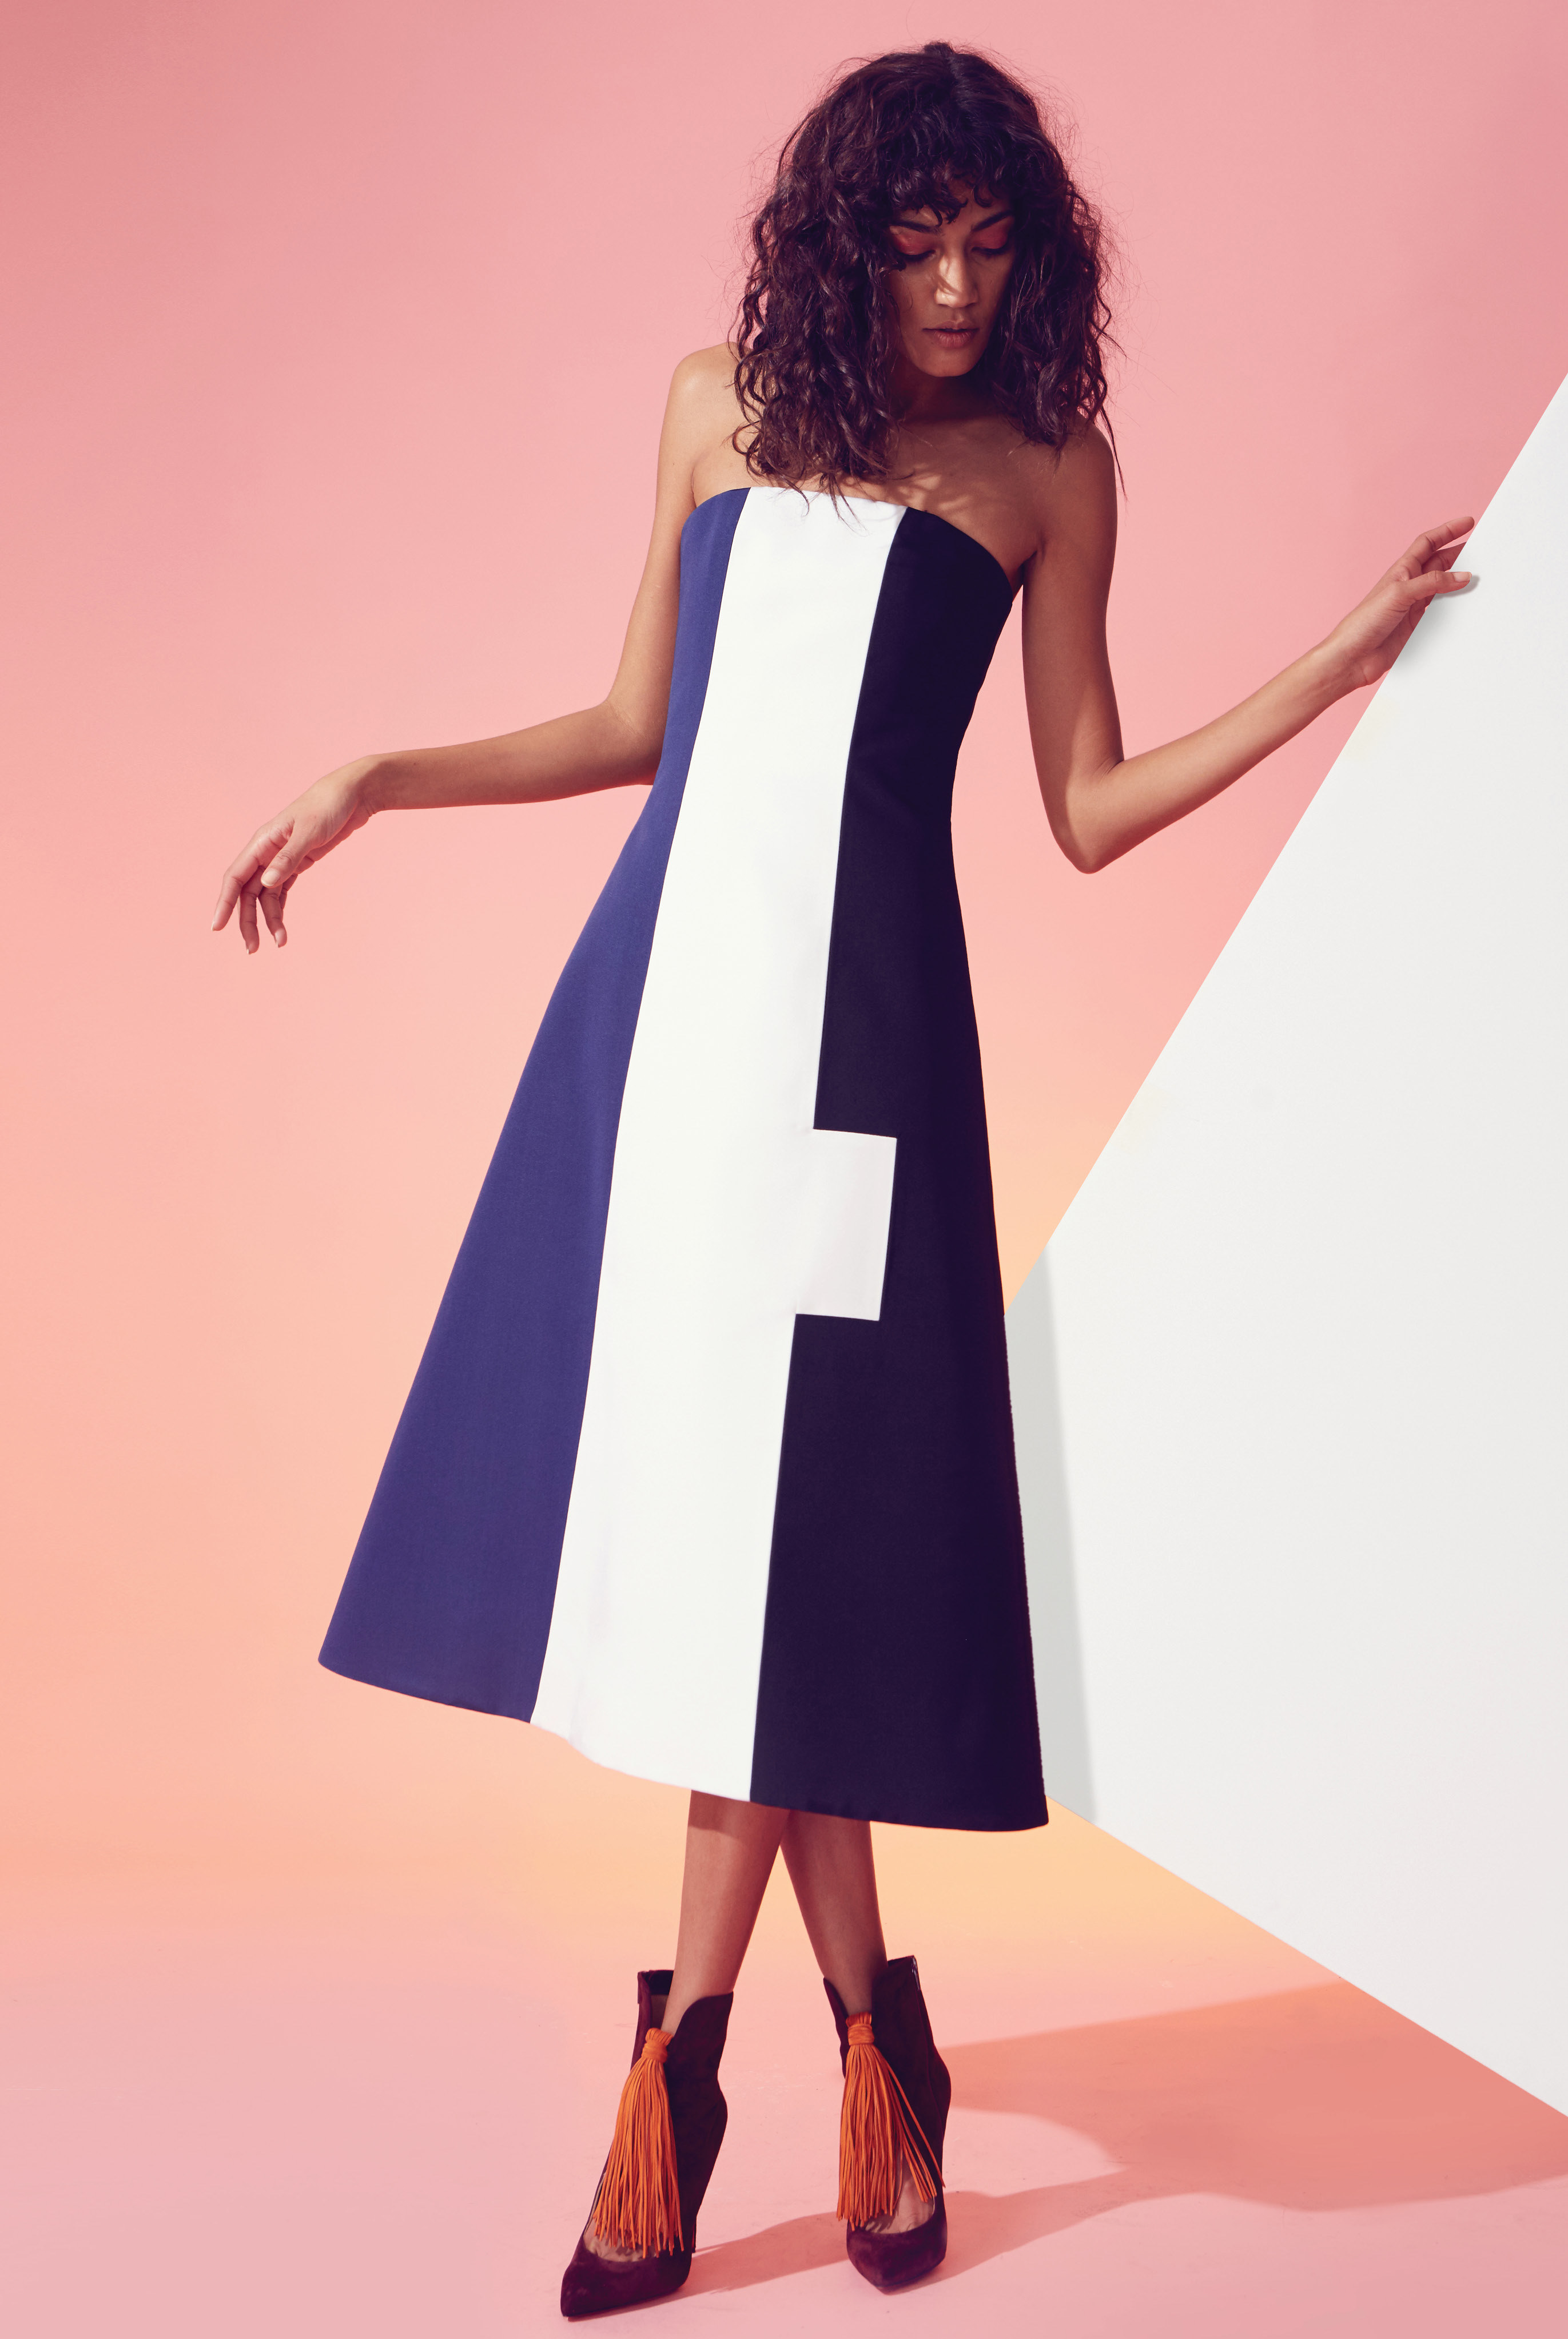 Novis – Clothing with vibrant colors and bold shapes, cuts and graphical elements.